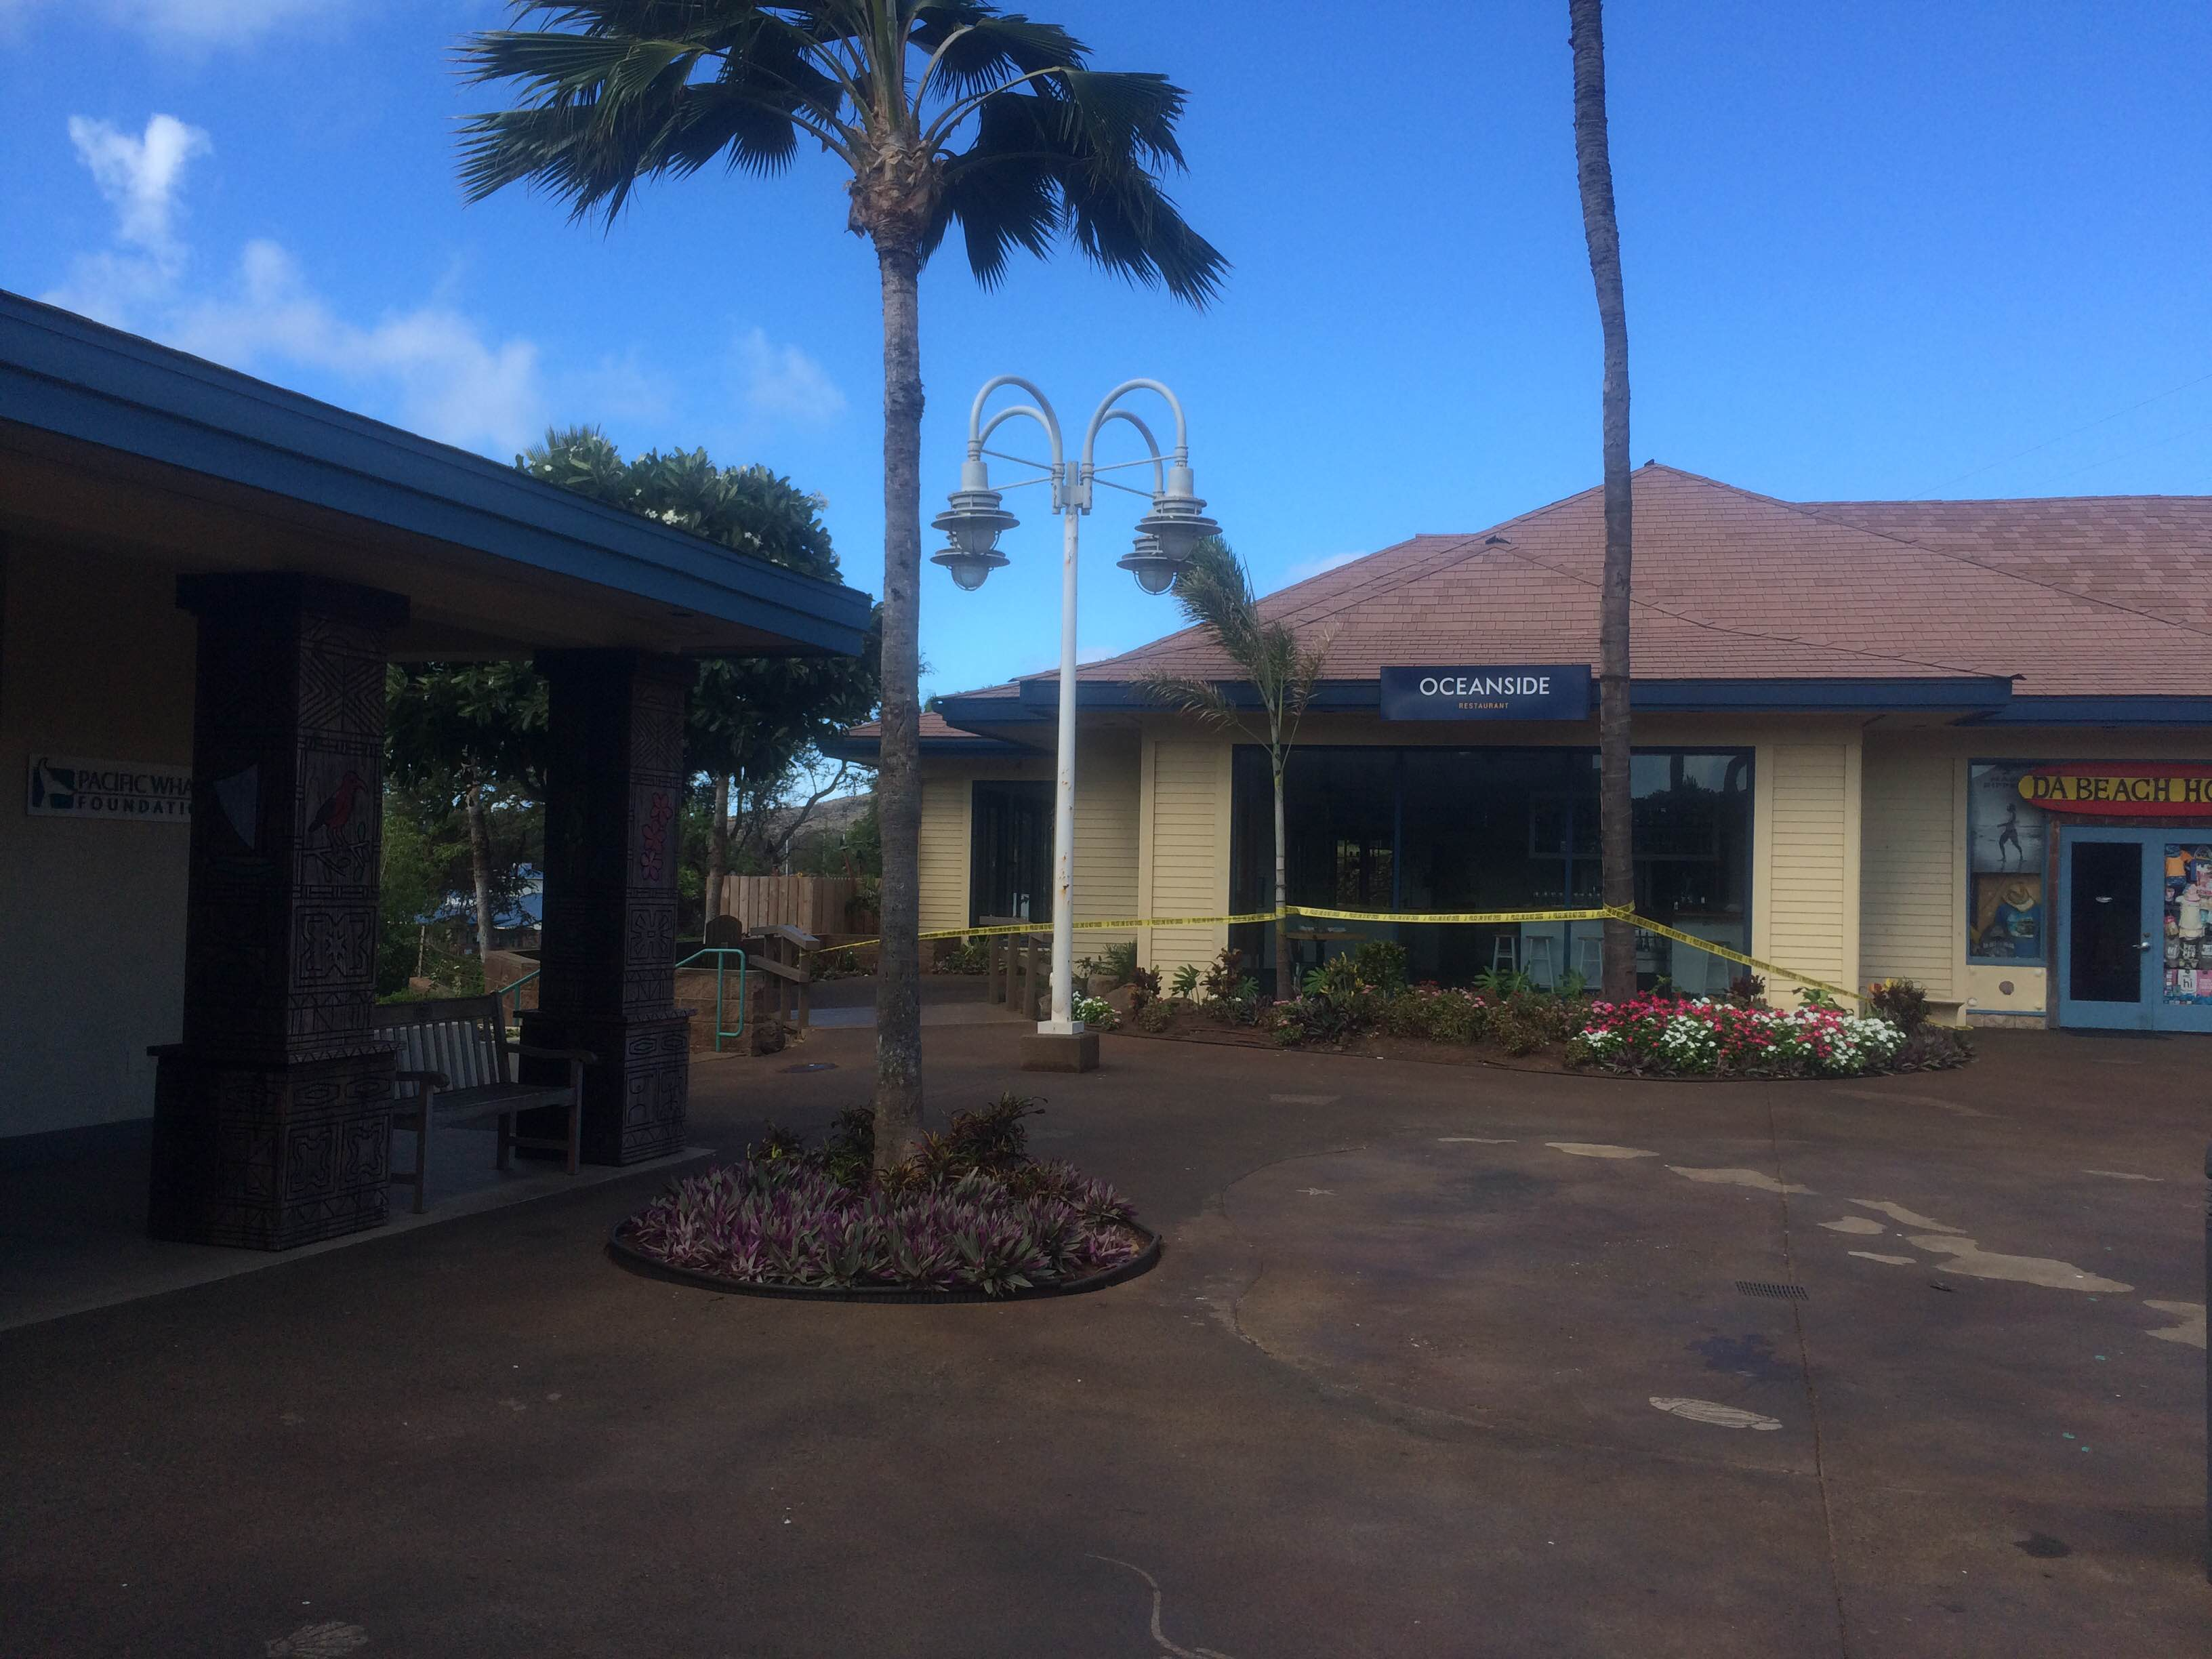 Oceanside Restaurant at Māʻlaea. Photo (6.24.16) credit: Kiaora Bohlool.